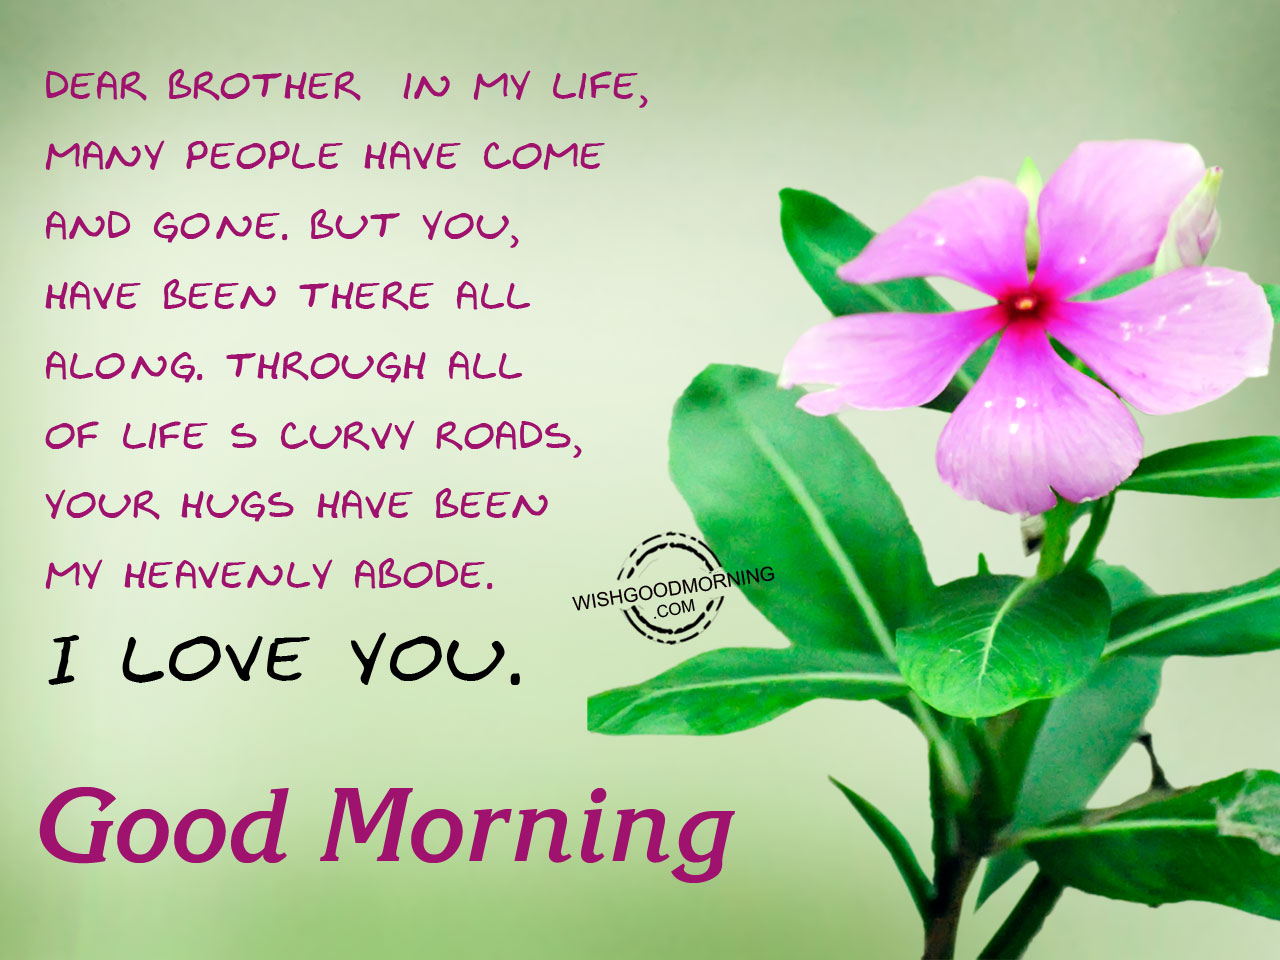 Wallpaper download morning - Download Good Morning Brother Wallpaper Gallery